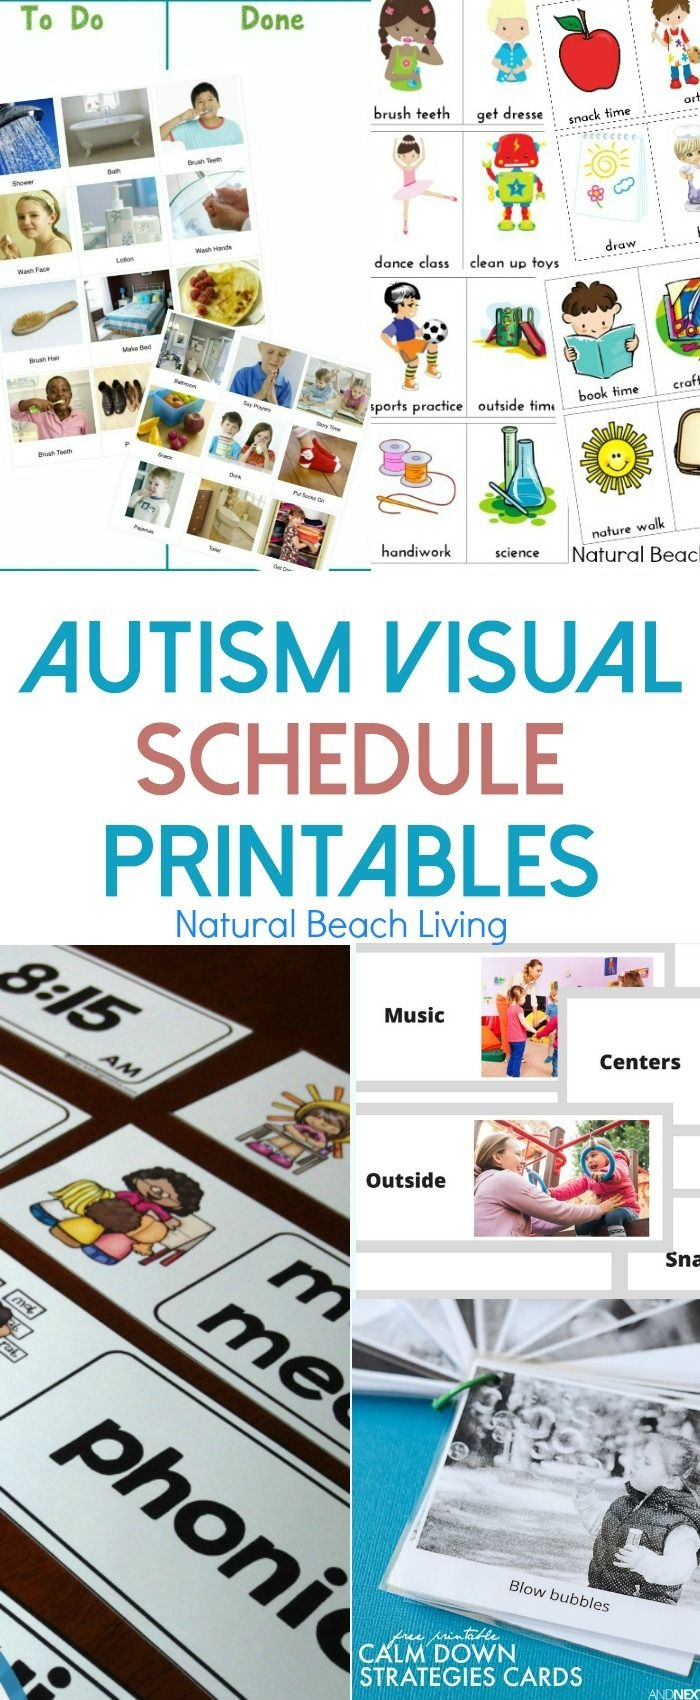 10+ Free Autism Visual Schedule Printables To Try Right Now | Super - Free Printable Picture Schedule For Preschool